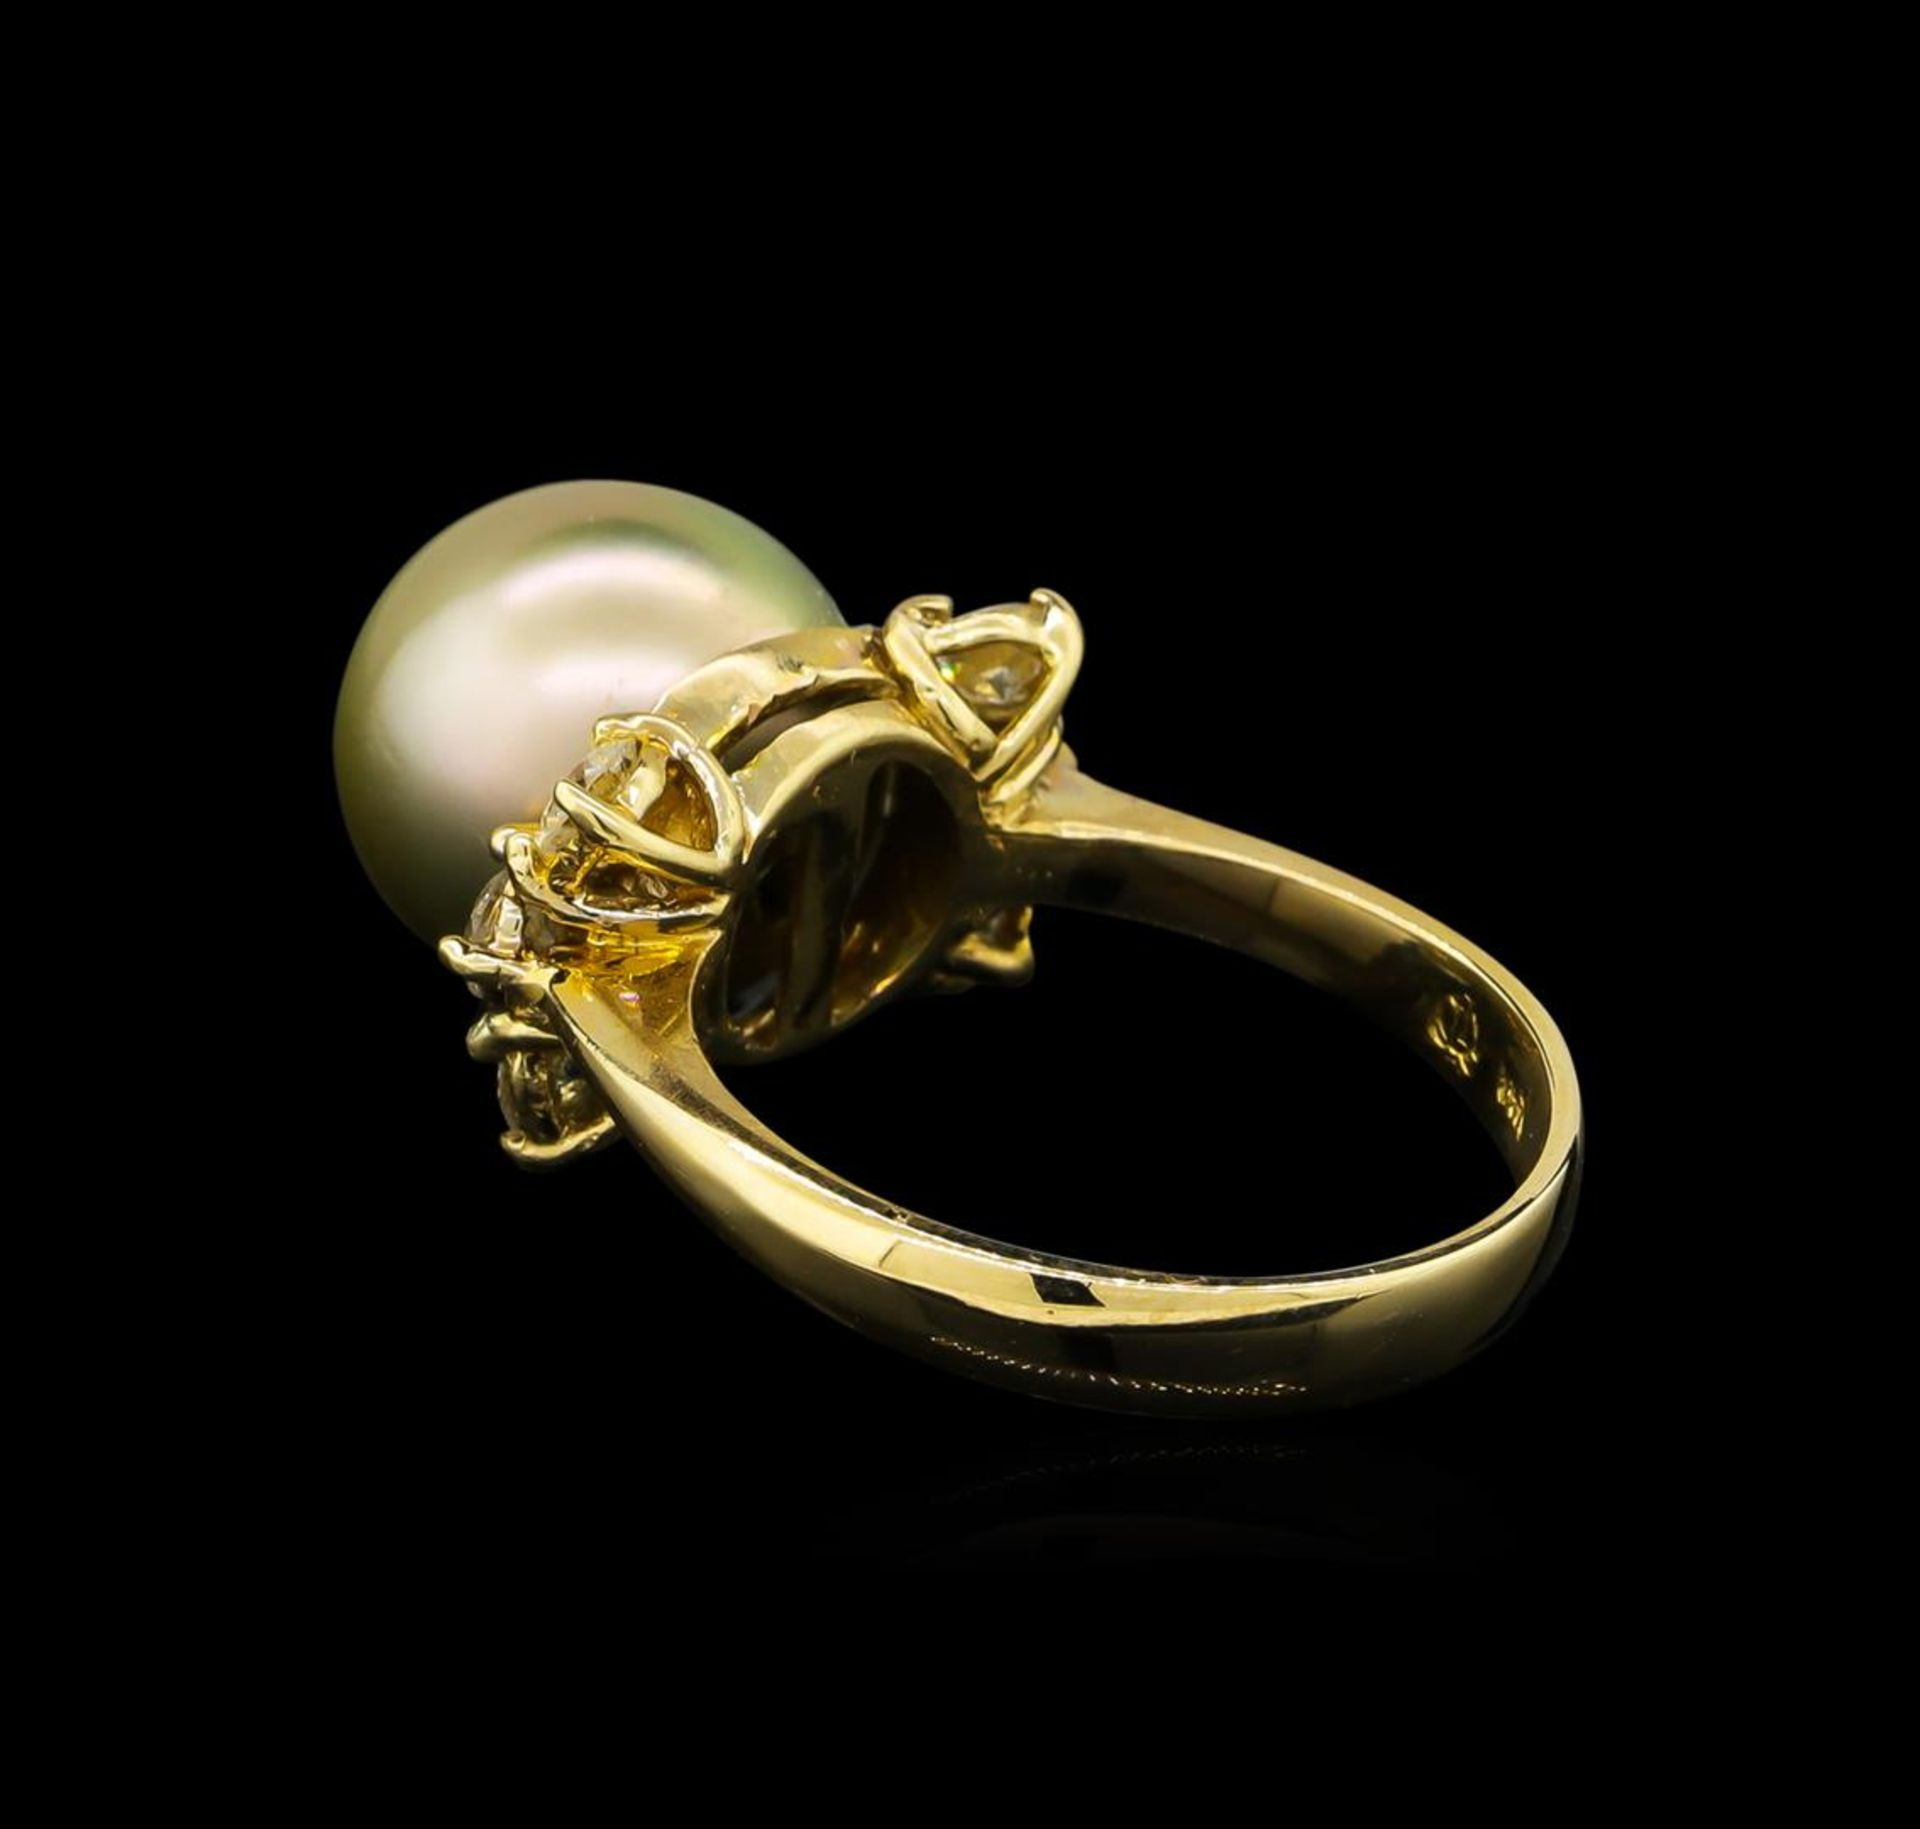 0.66 ctw Pearl and Diamond Ring - 14KT Yellow Gold - Image 3 of 4